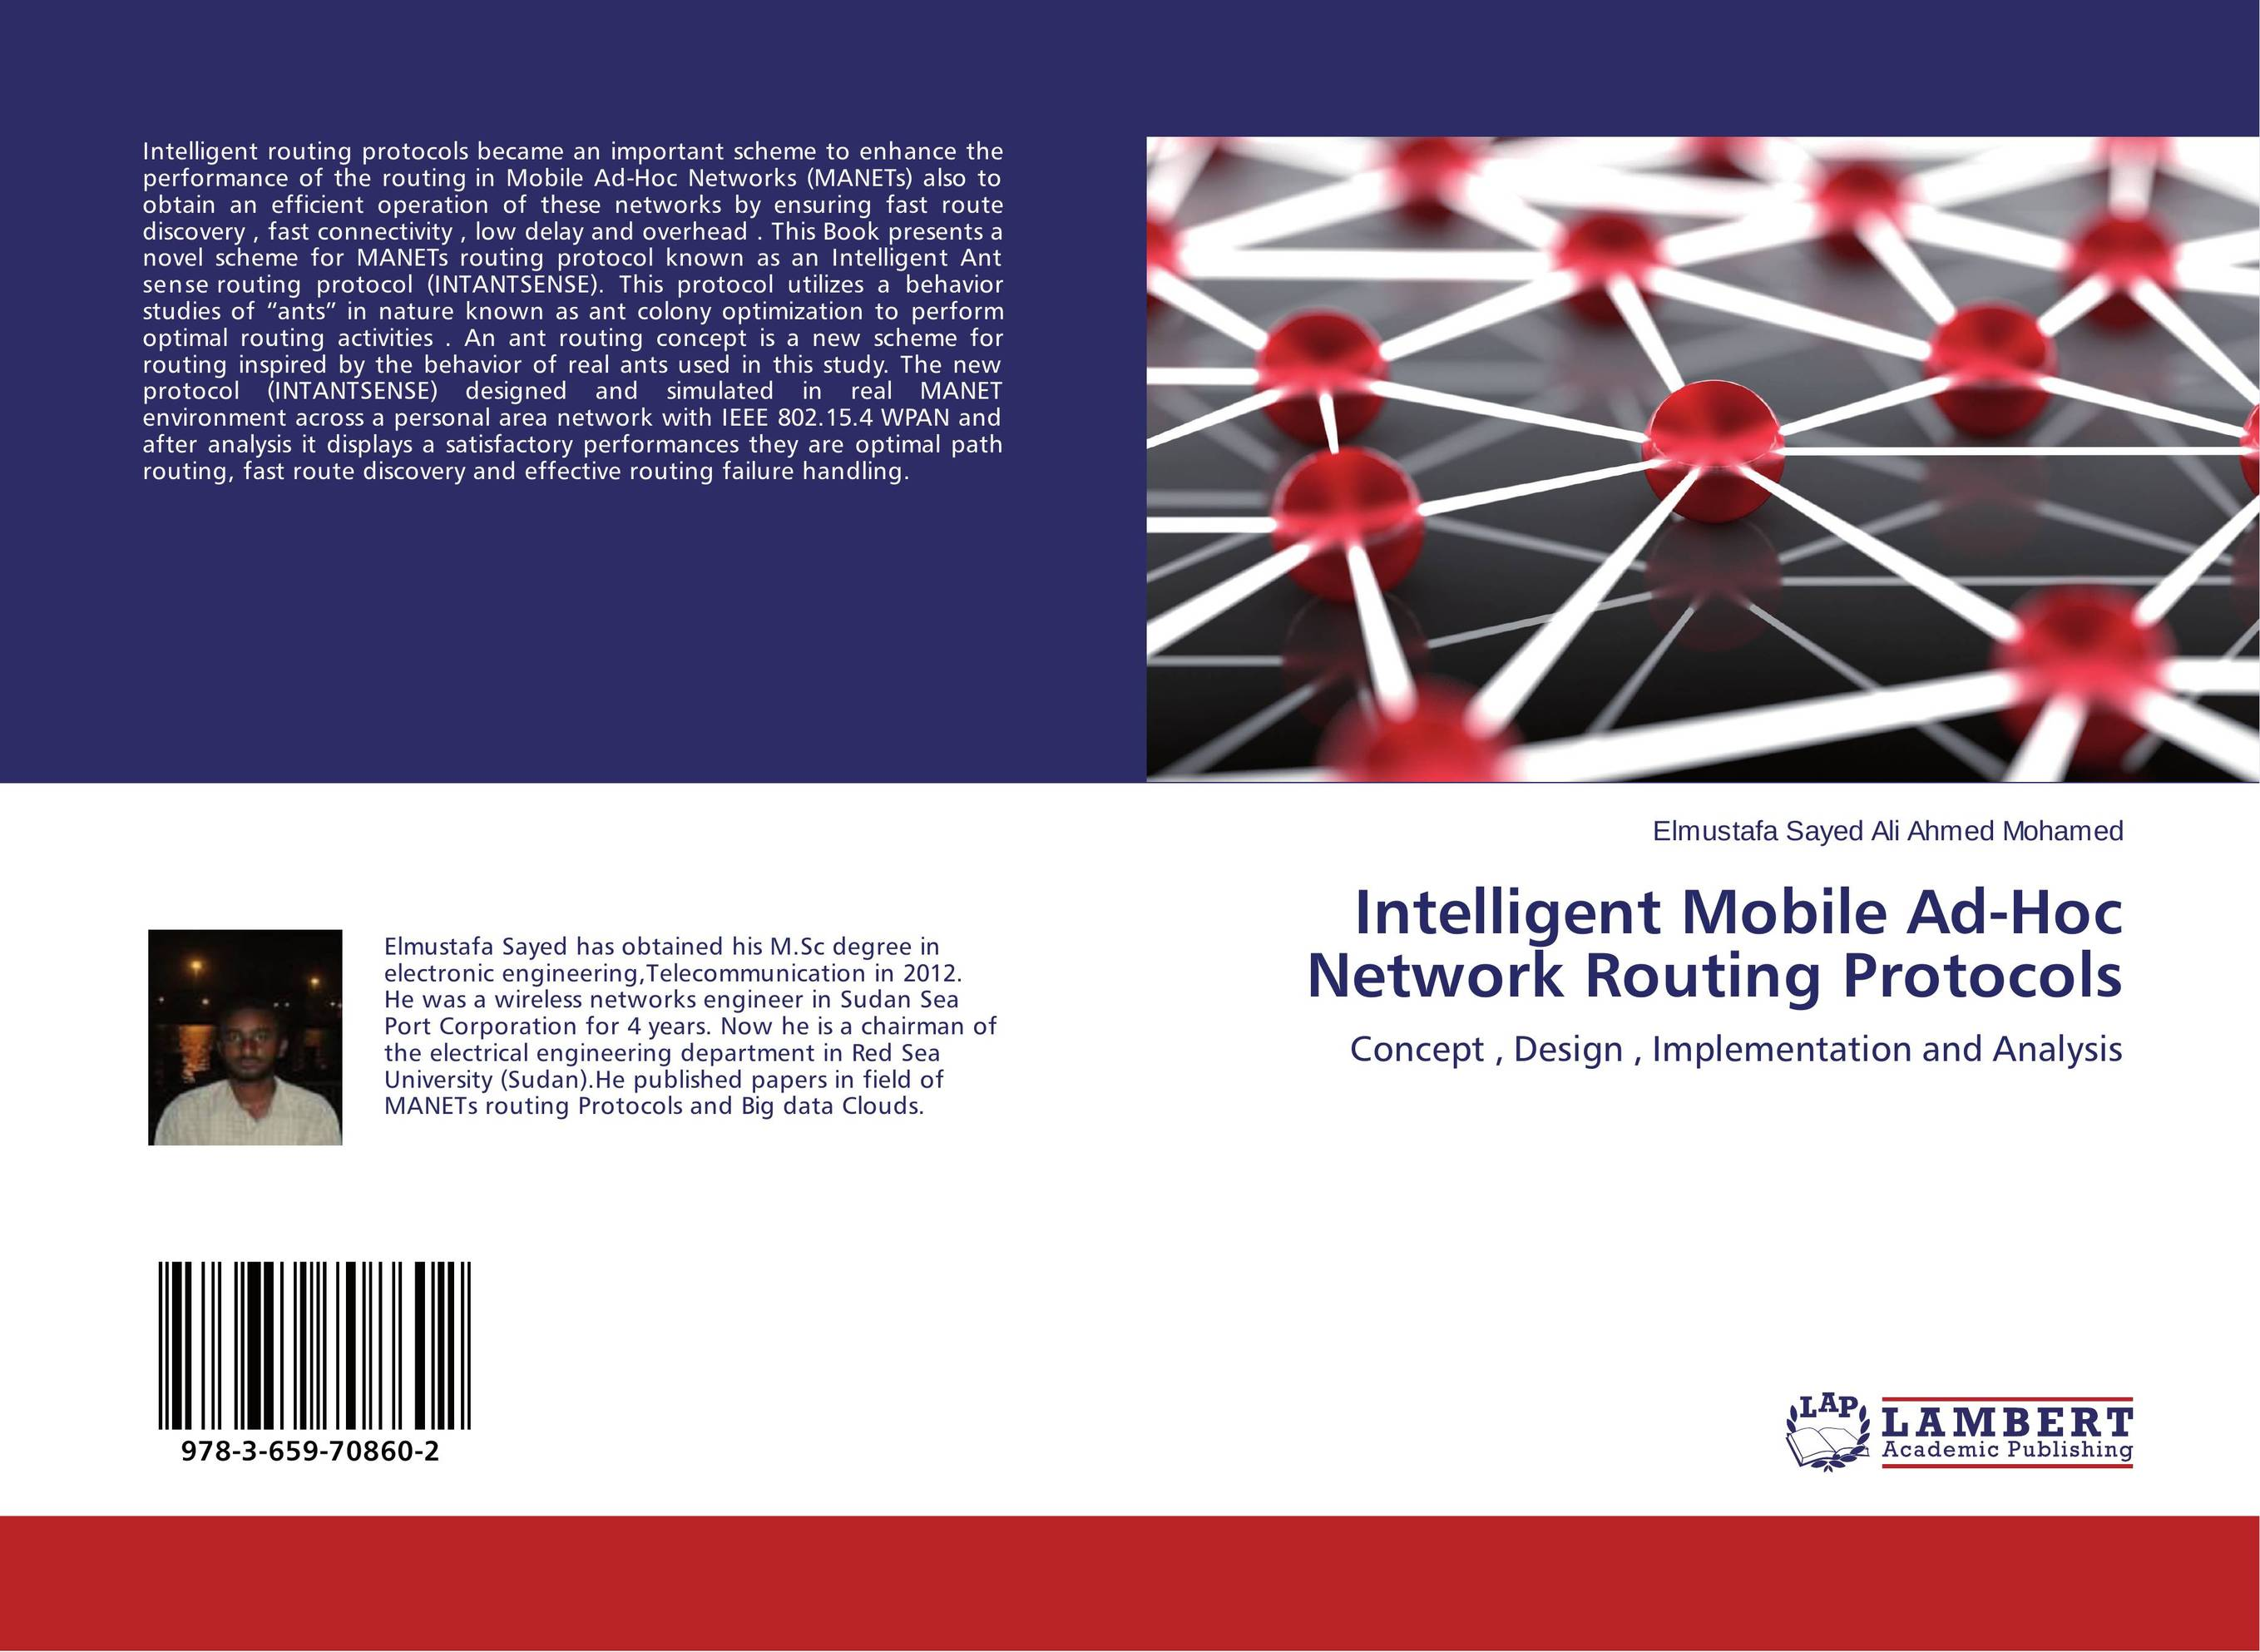 Intelligent Mobile Ad-Hoc Network Routing Protocols protocol discovery